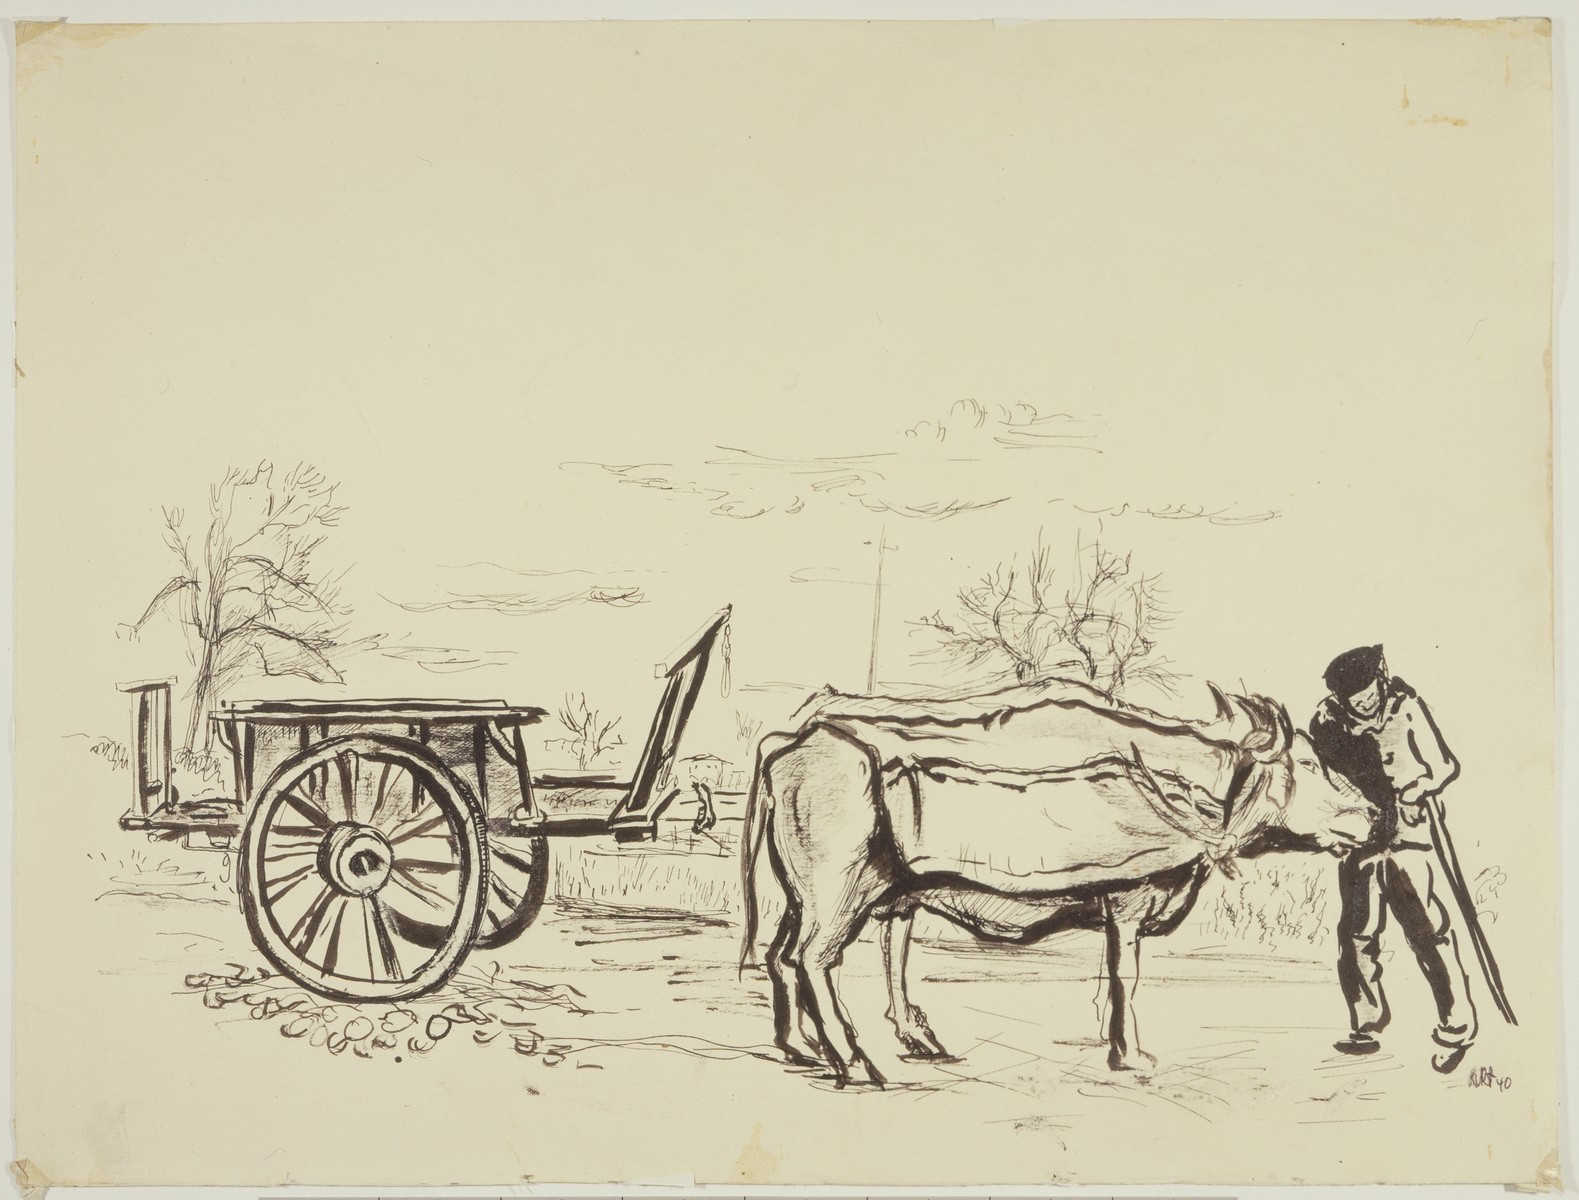 """Basque Peasant with his Oxcart outside Camp de Gurs""  by Lili Andrieux."